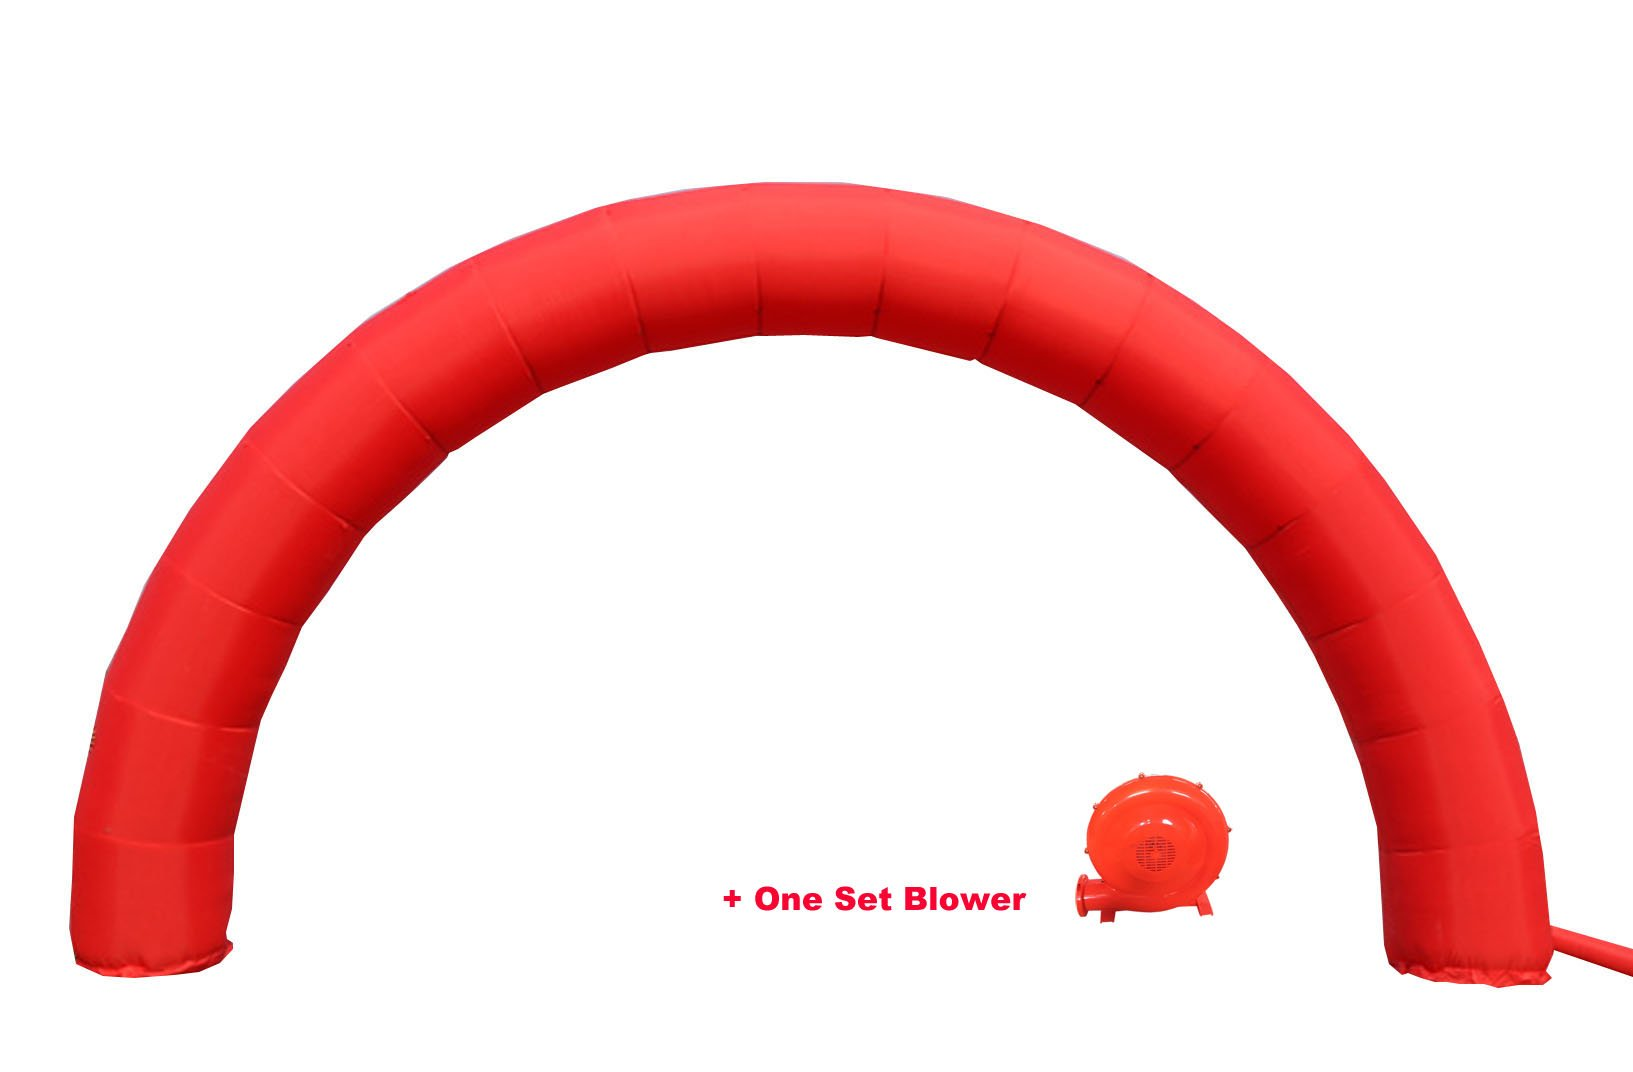 INTBUYING Inflatable Arch 20ftX10 Foot Red Color Advertising Birthday Party Decoration Arch with 110V Blower